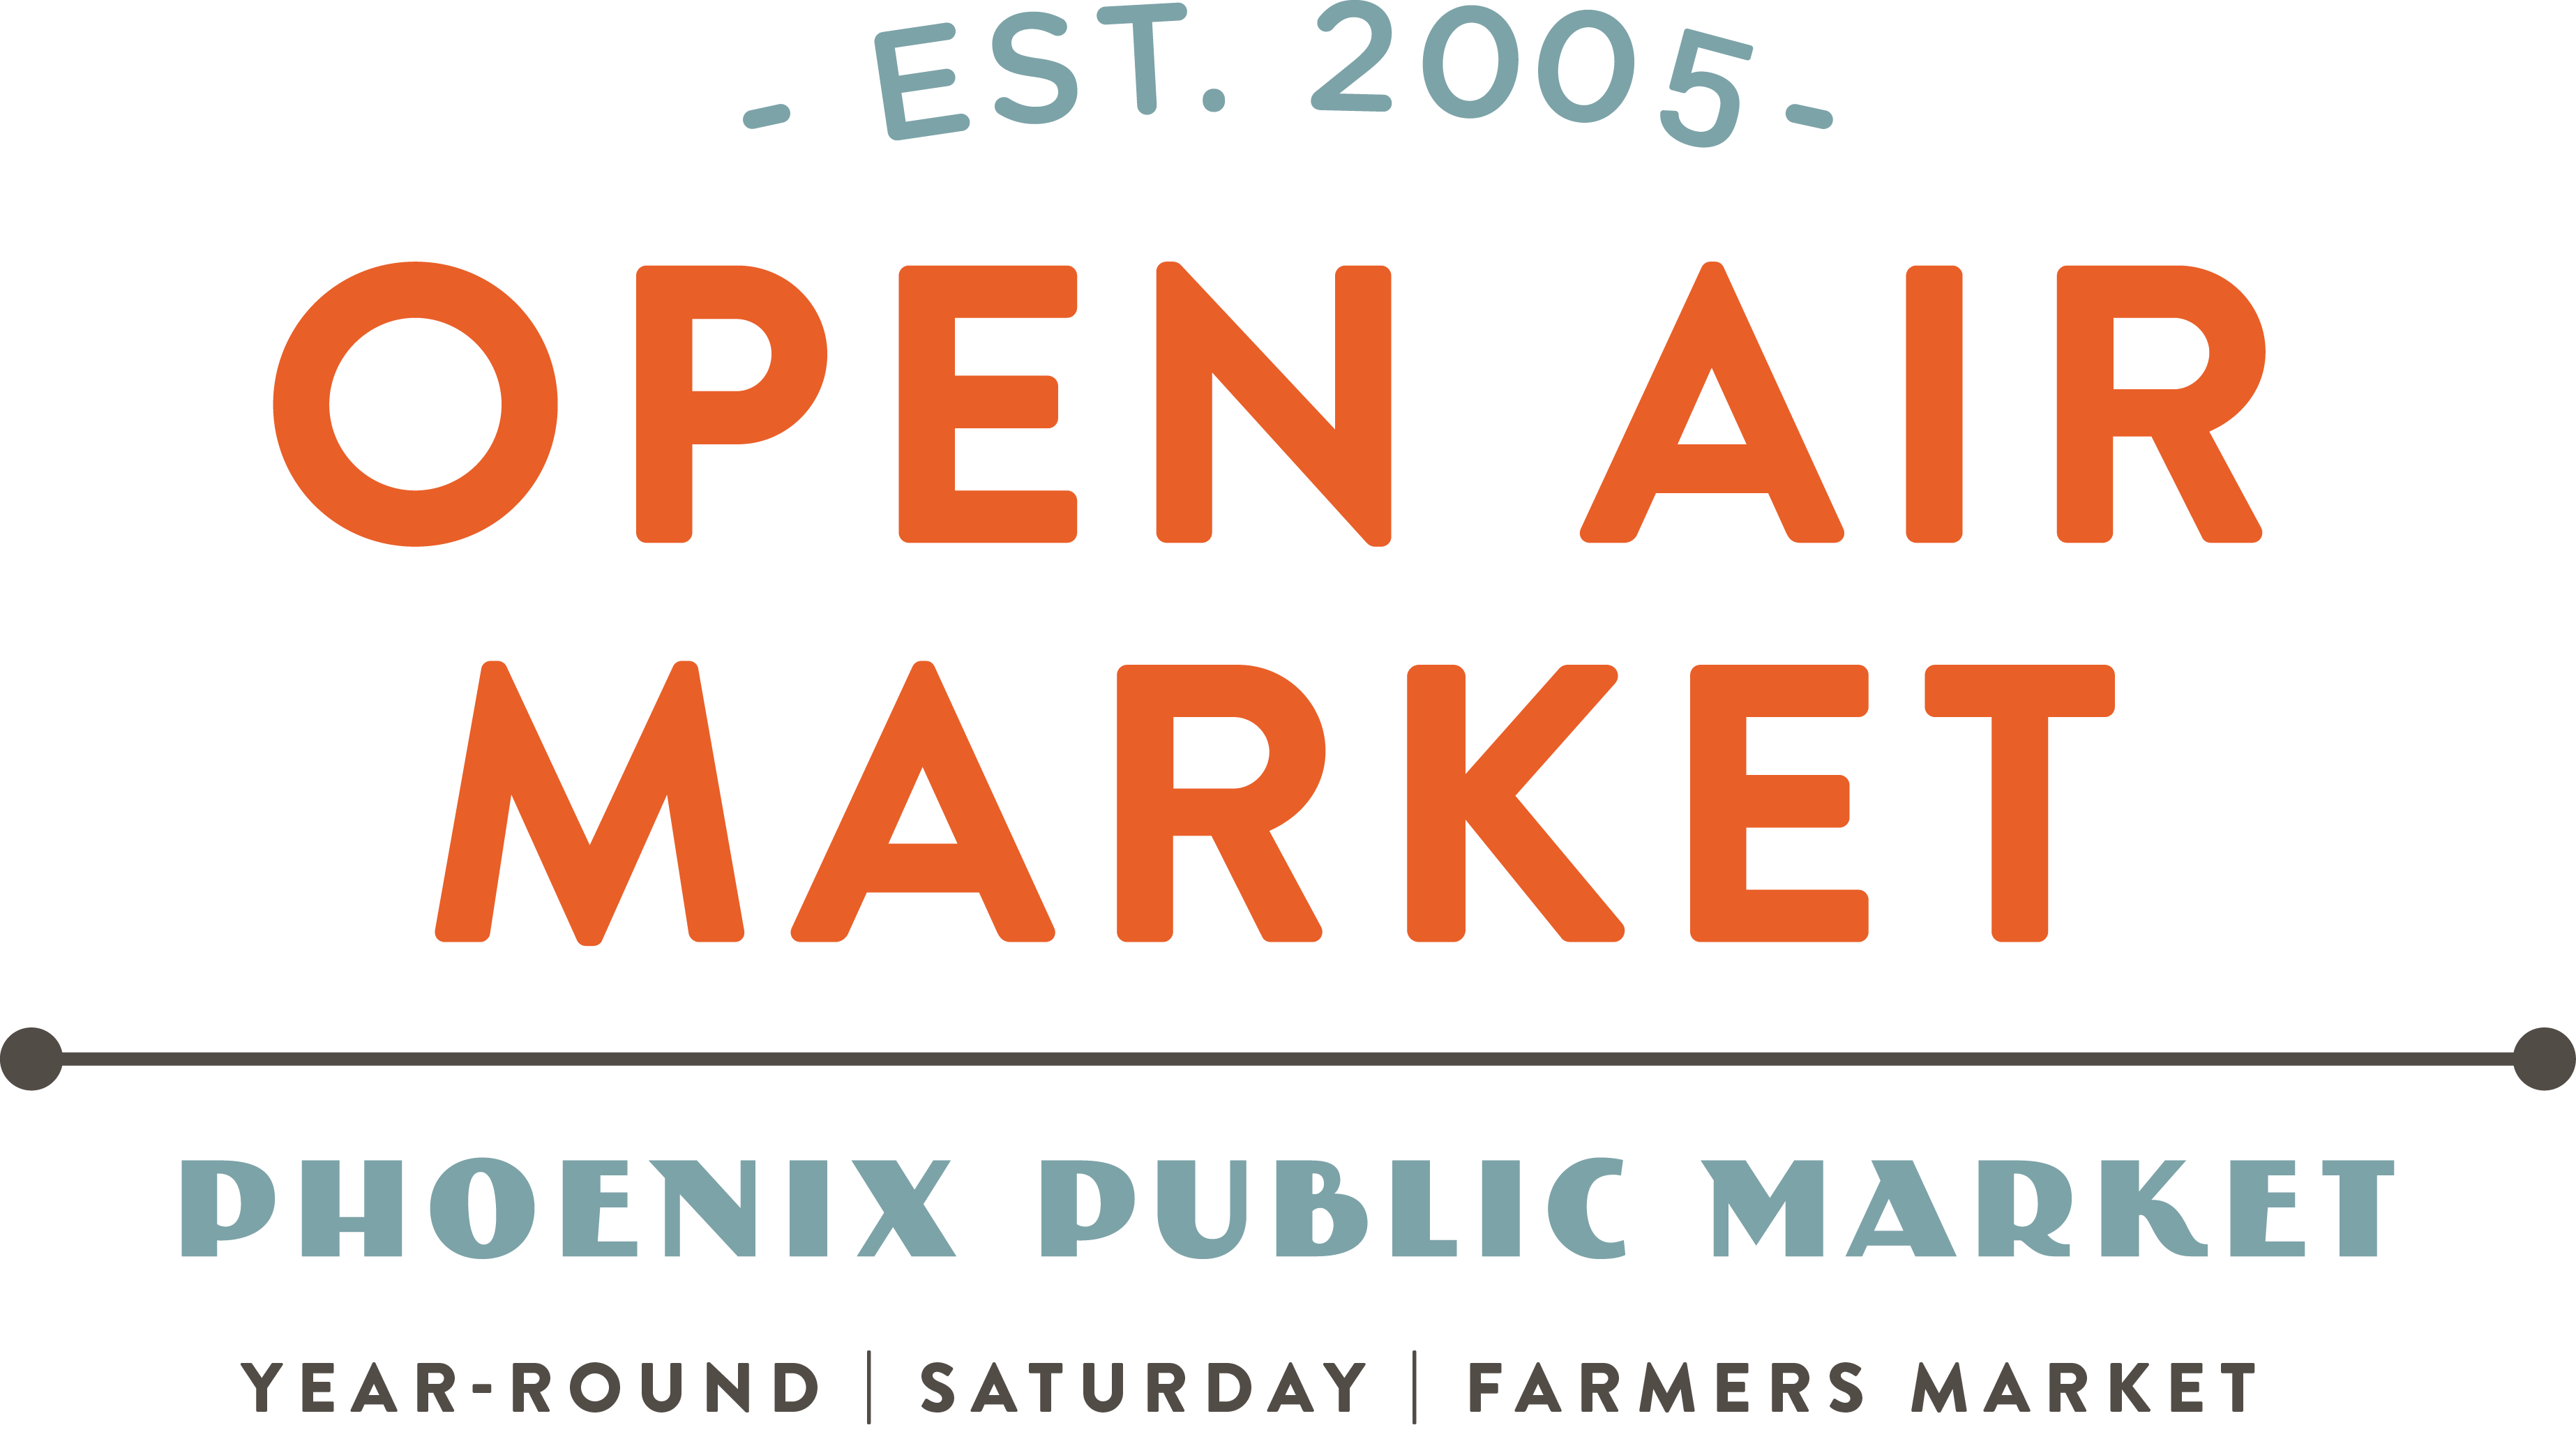 Open Air Market at the Phoenix Public Market